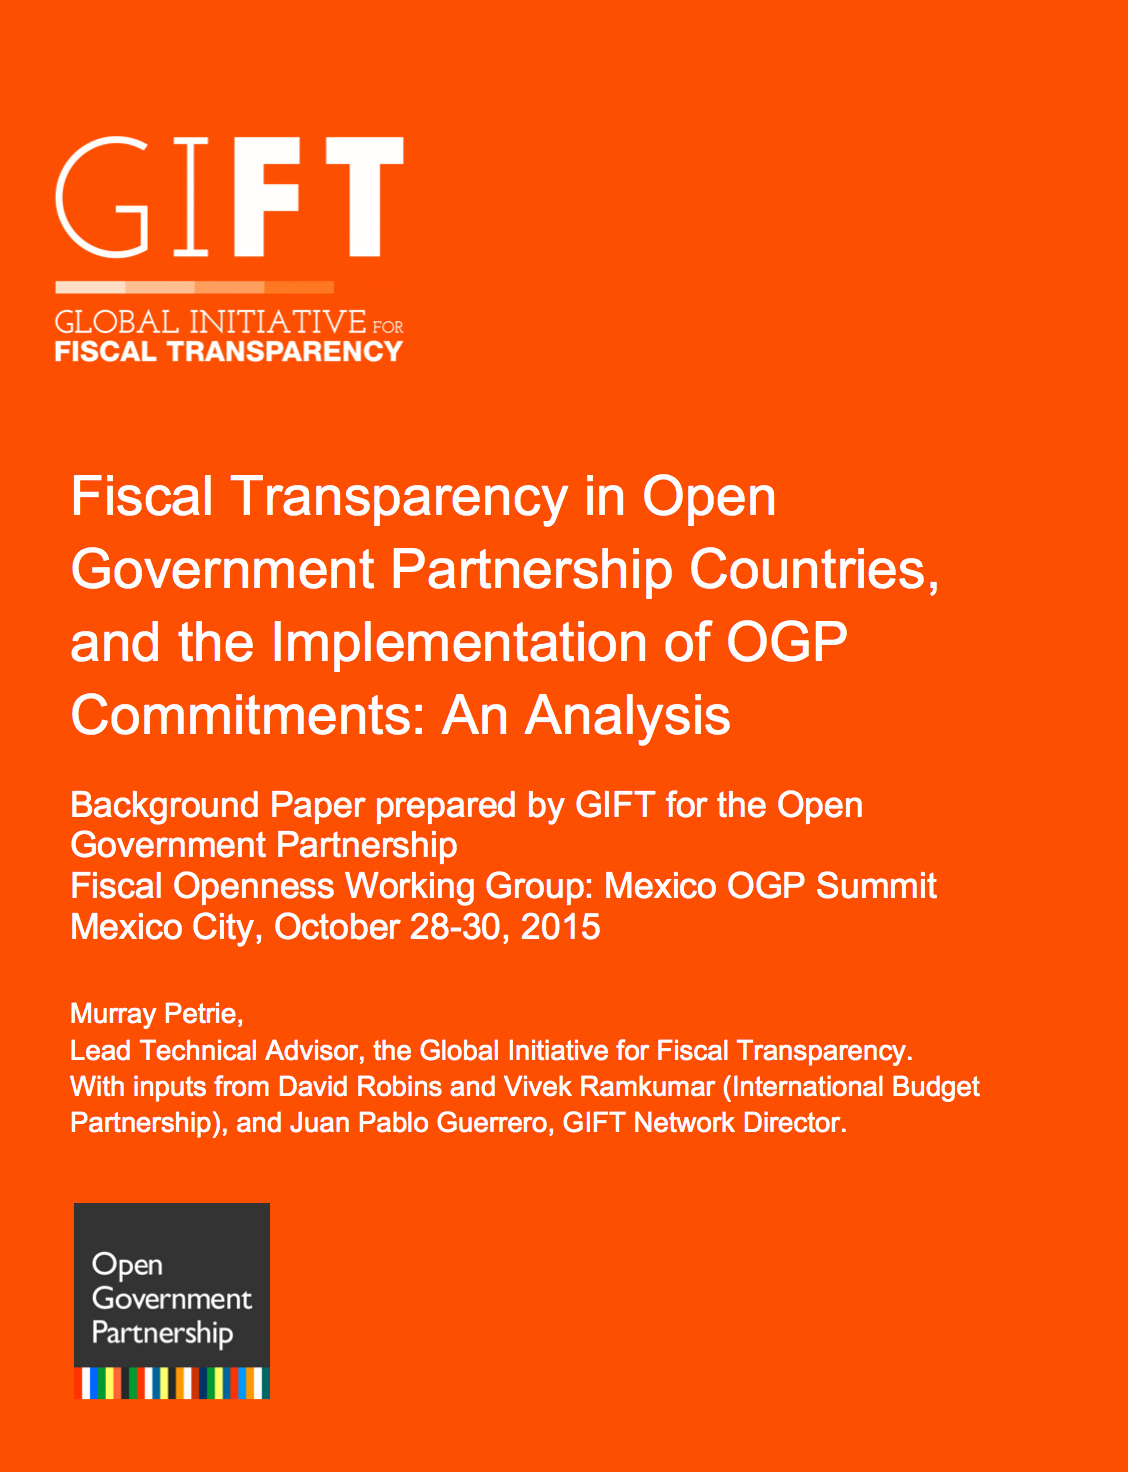 Fiscal Transparency in Open Government Partnership Countries, and the Implementation of OGP Commitments: An Analysis